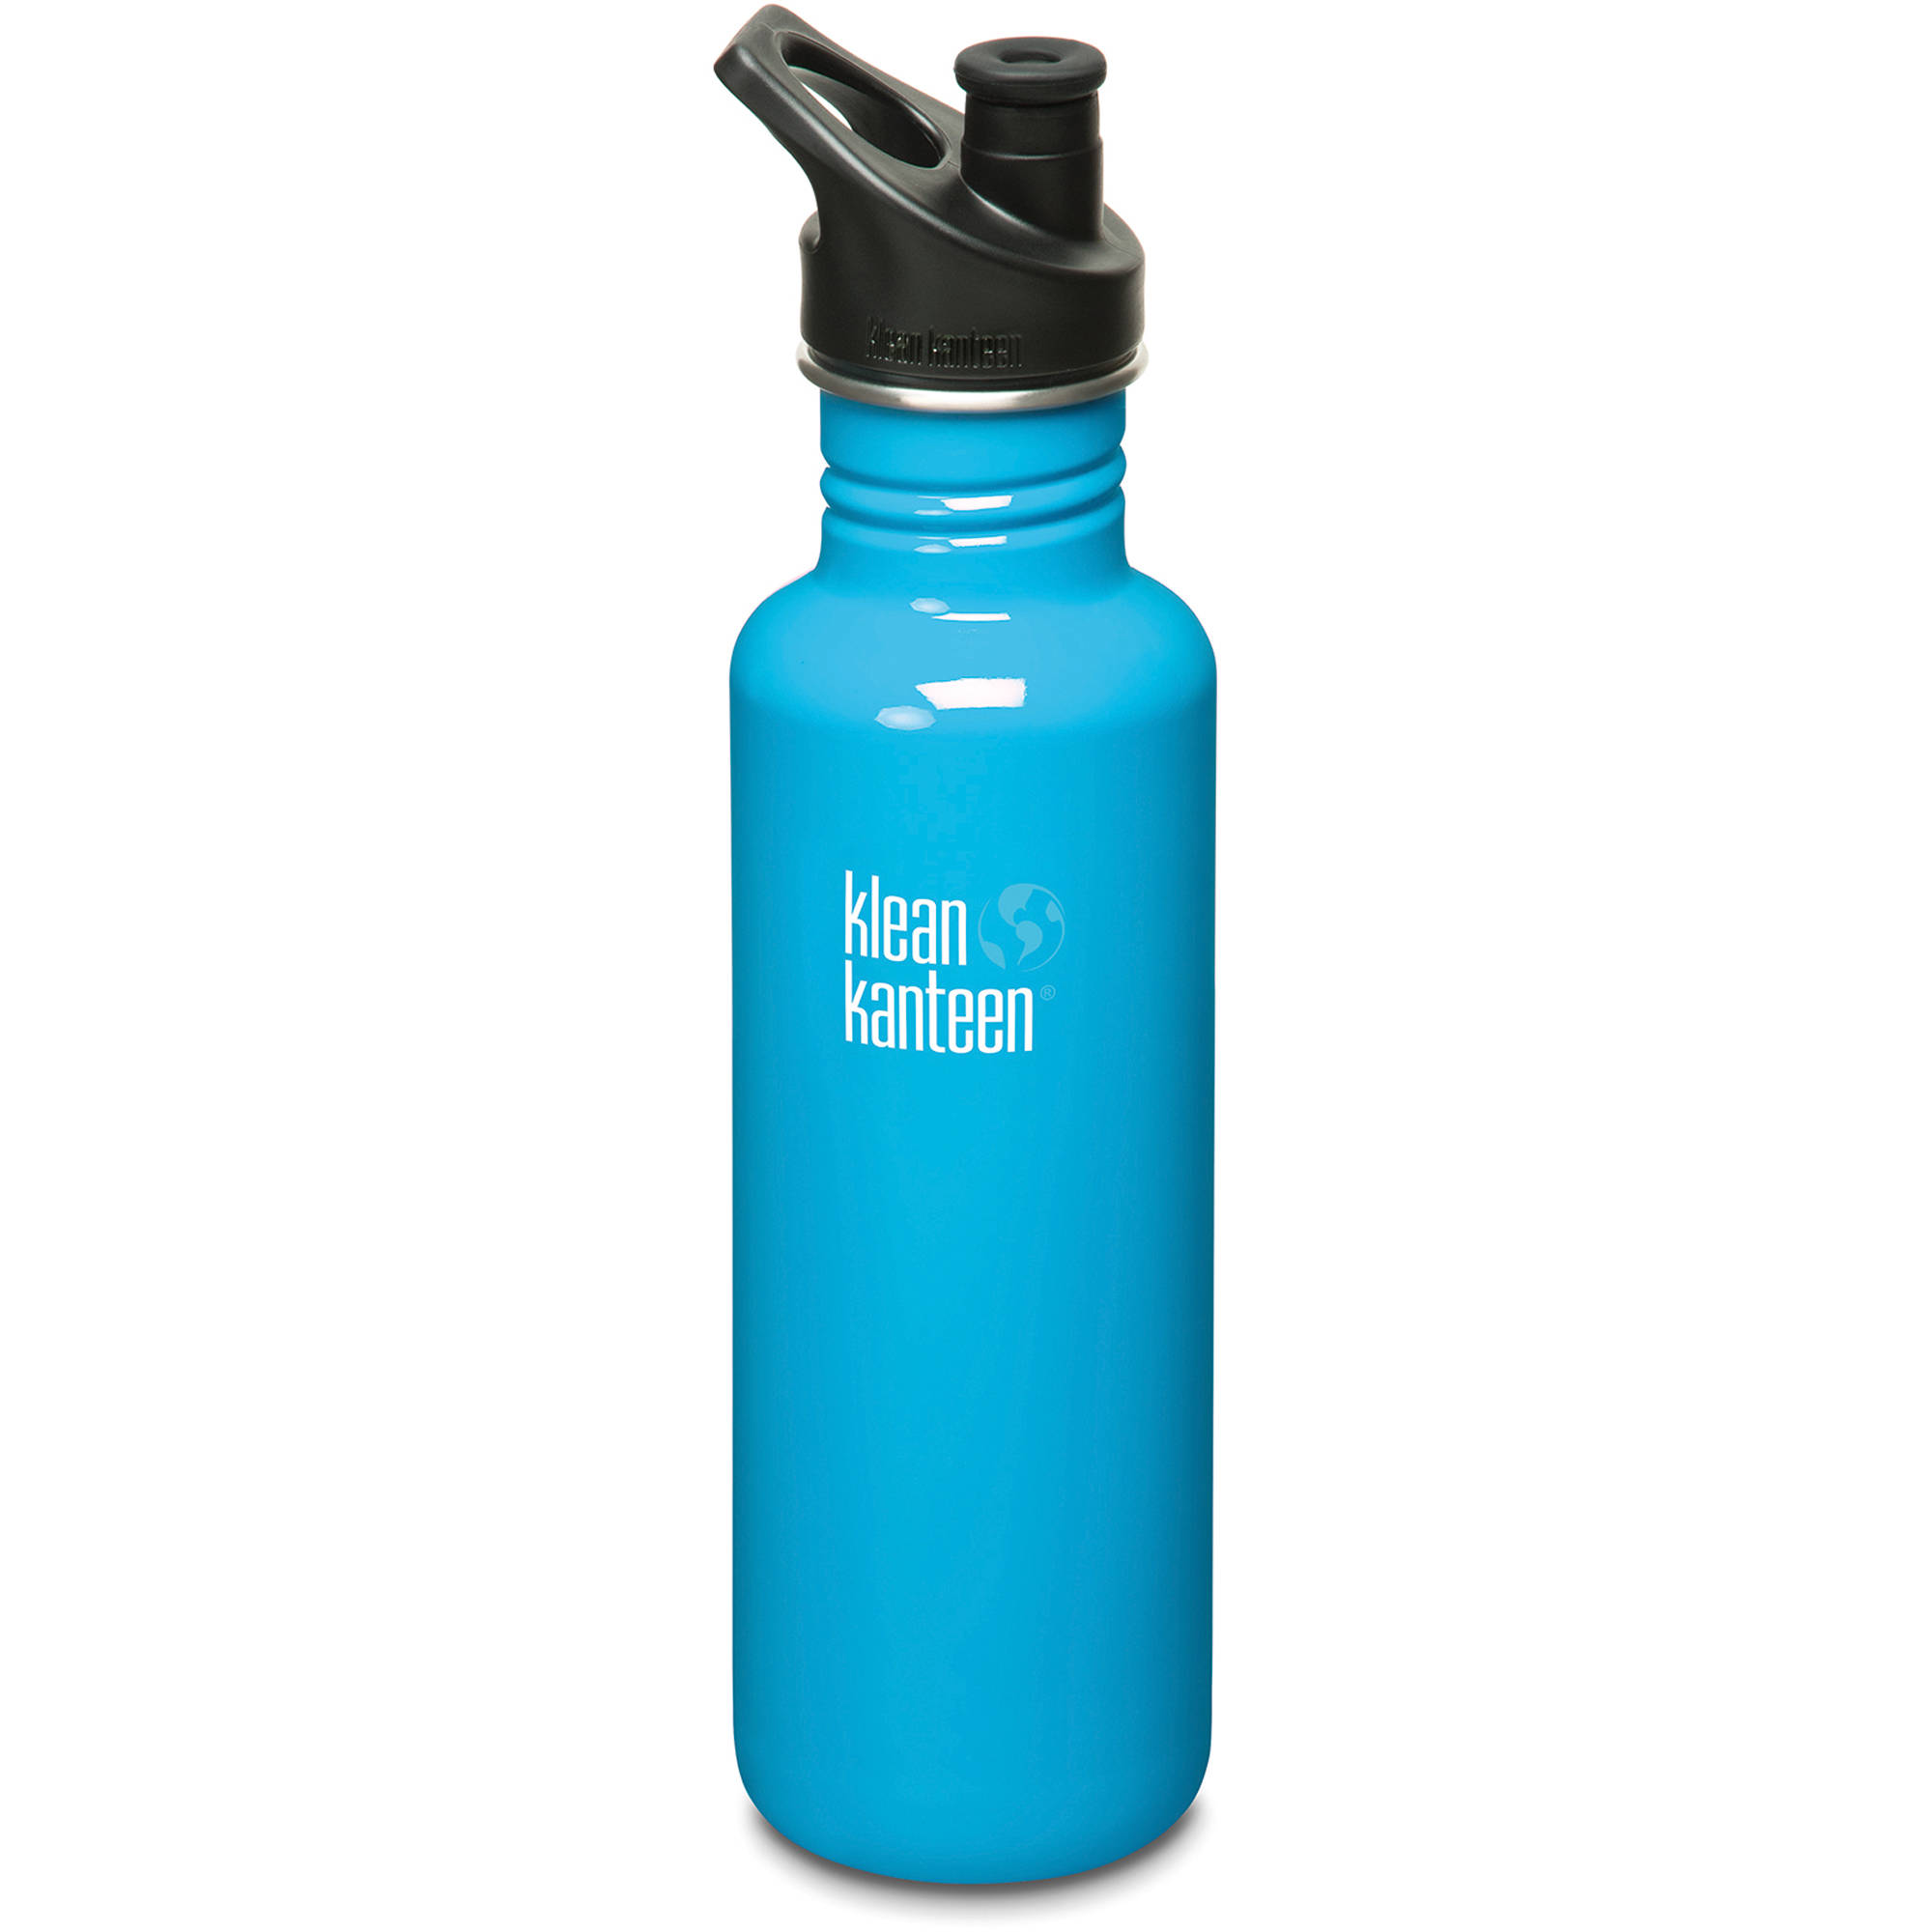 how to clean klean kanteen water bottles